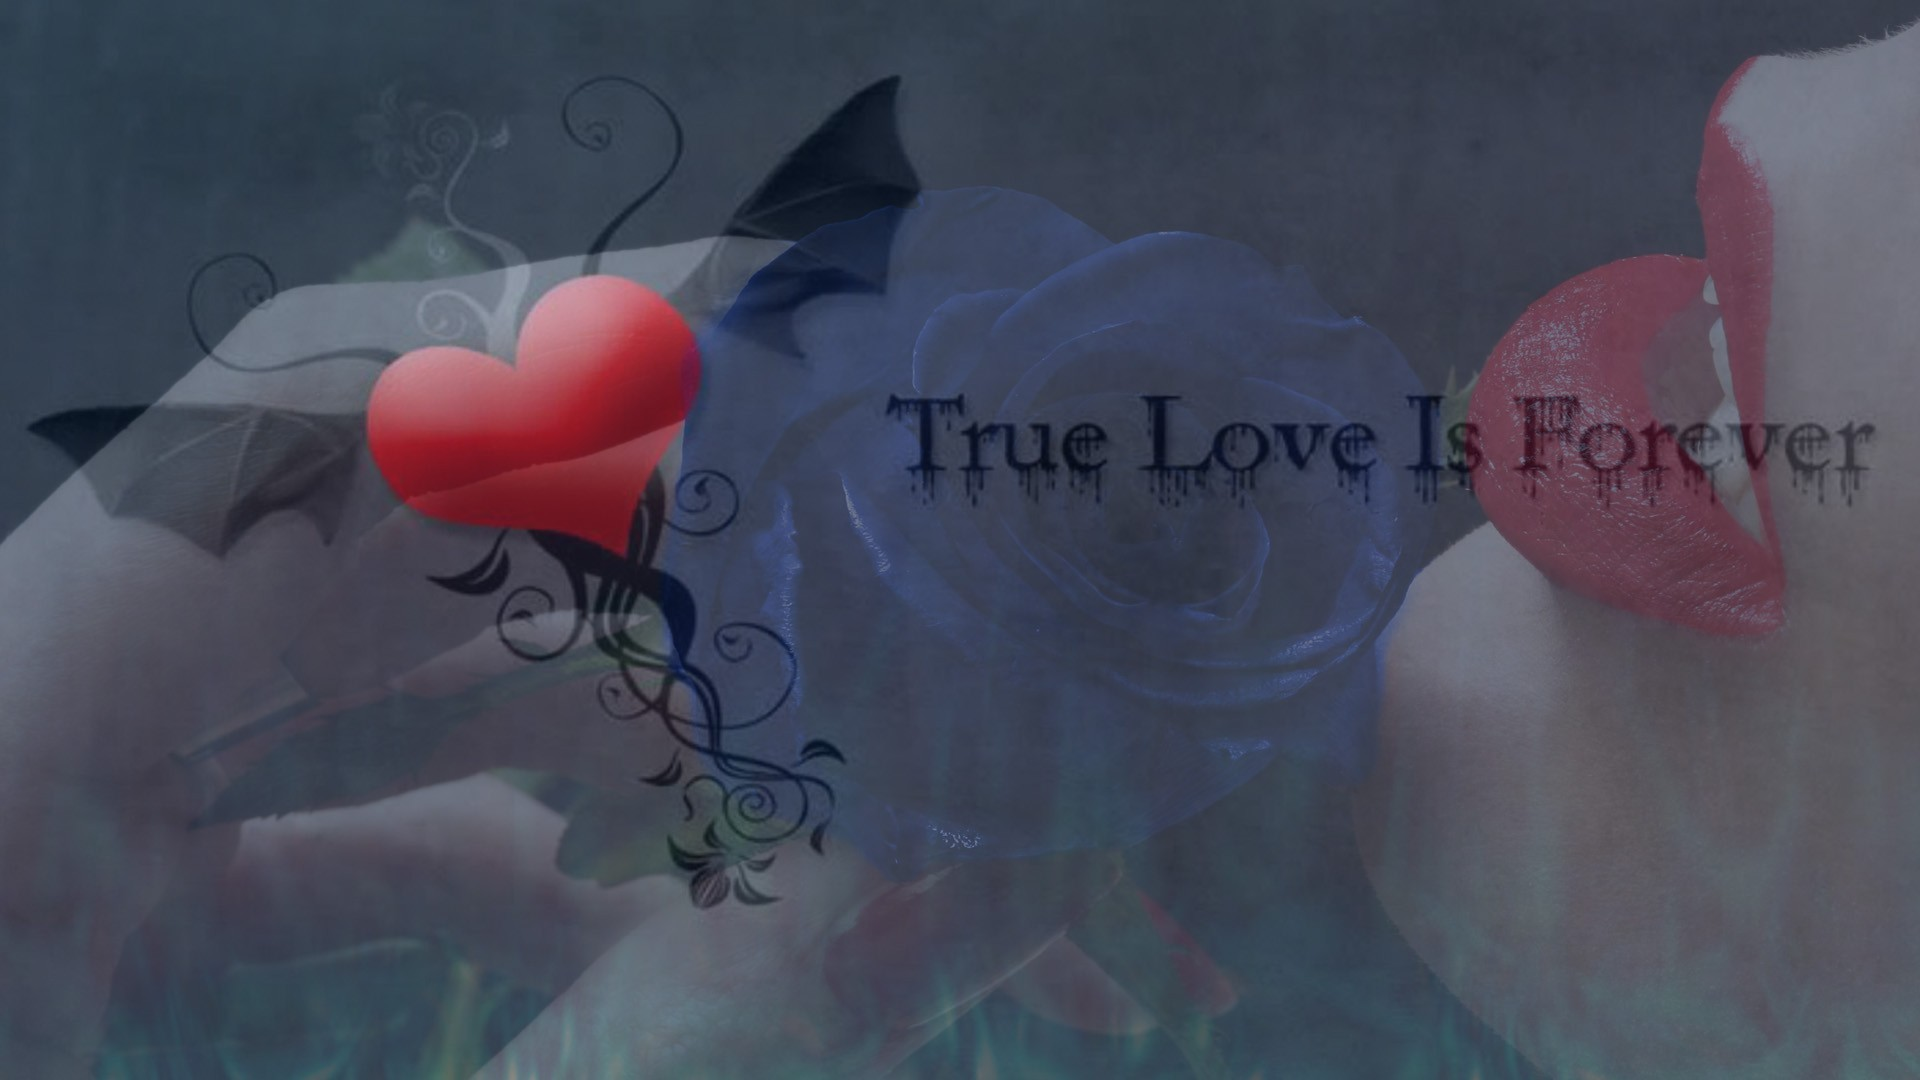 True Love Iphone Wallpaper : True love is forever wallpaper AllWallpaper.in #5616 Pc en